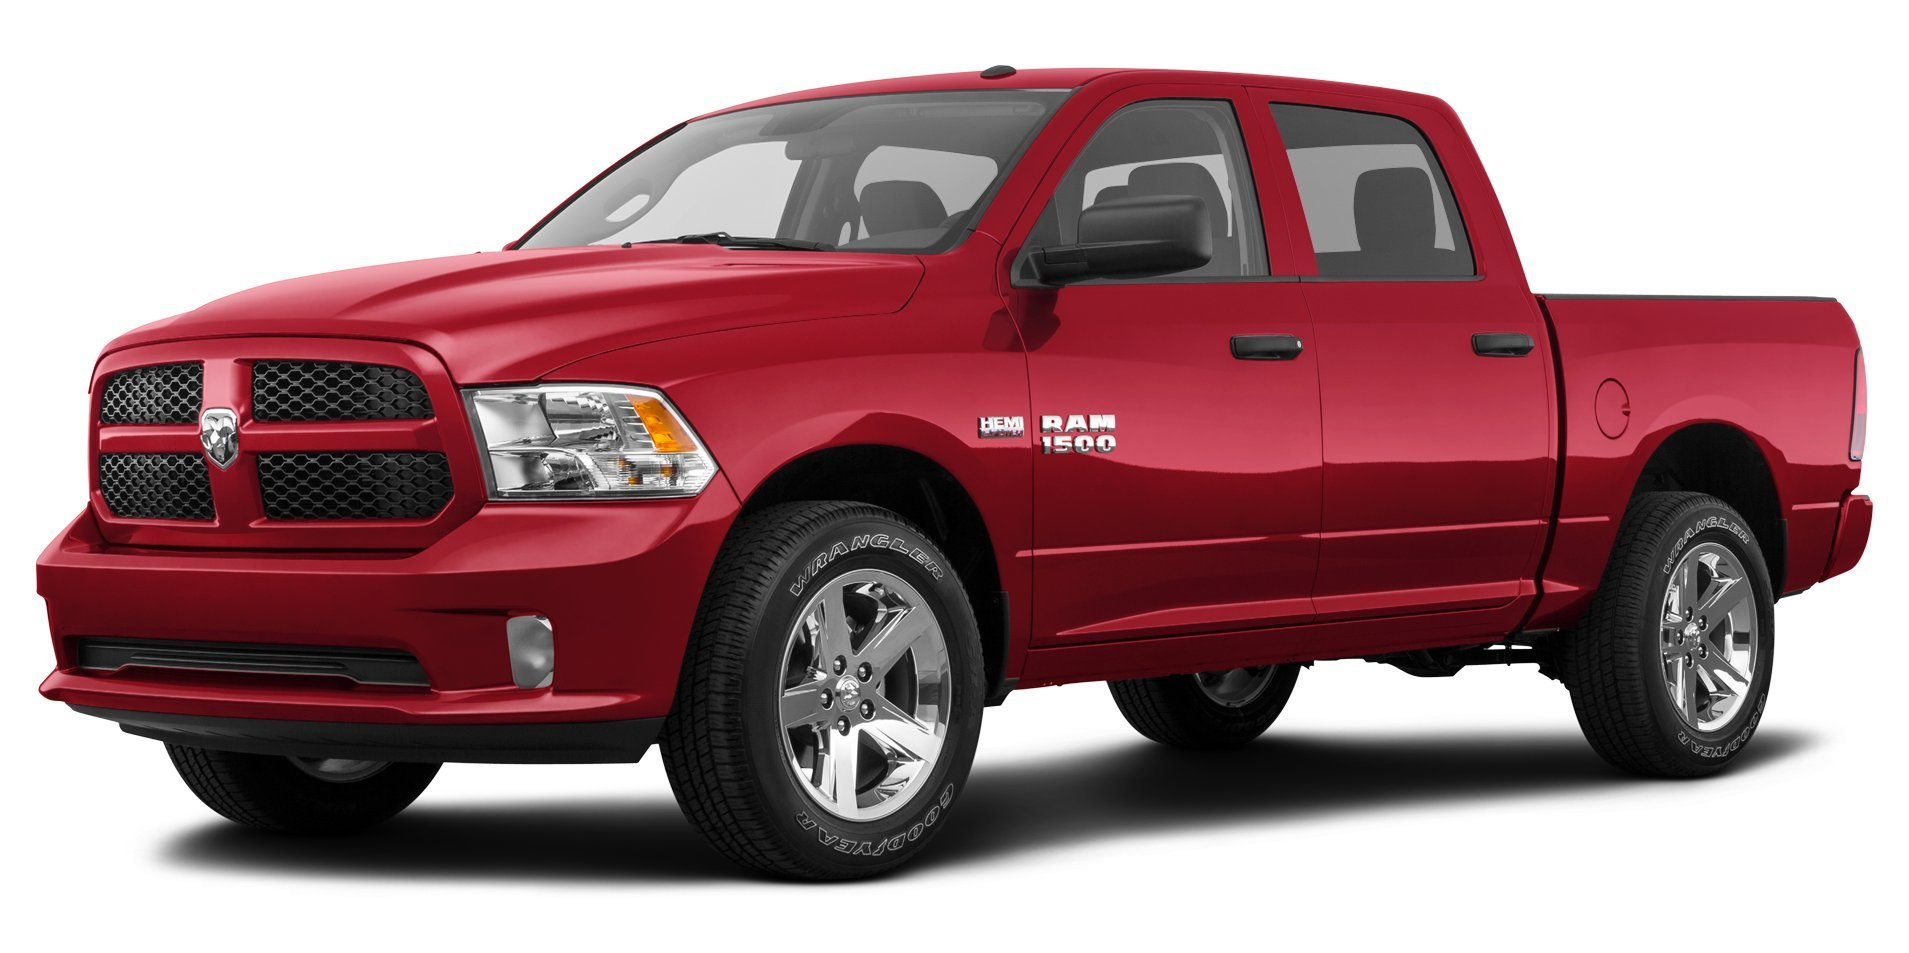 2017 ram 1500 reviews images and specs vehicles. Black Bedroom Furniture Sets. Home Design Ideas